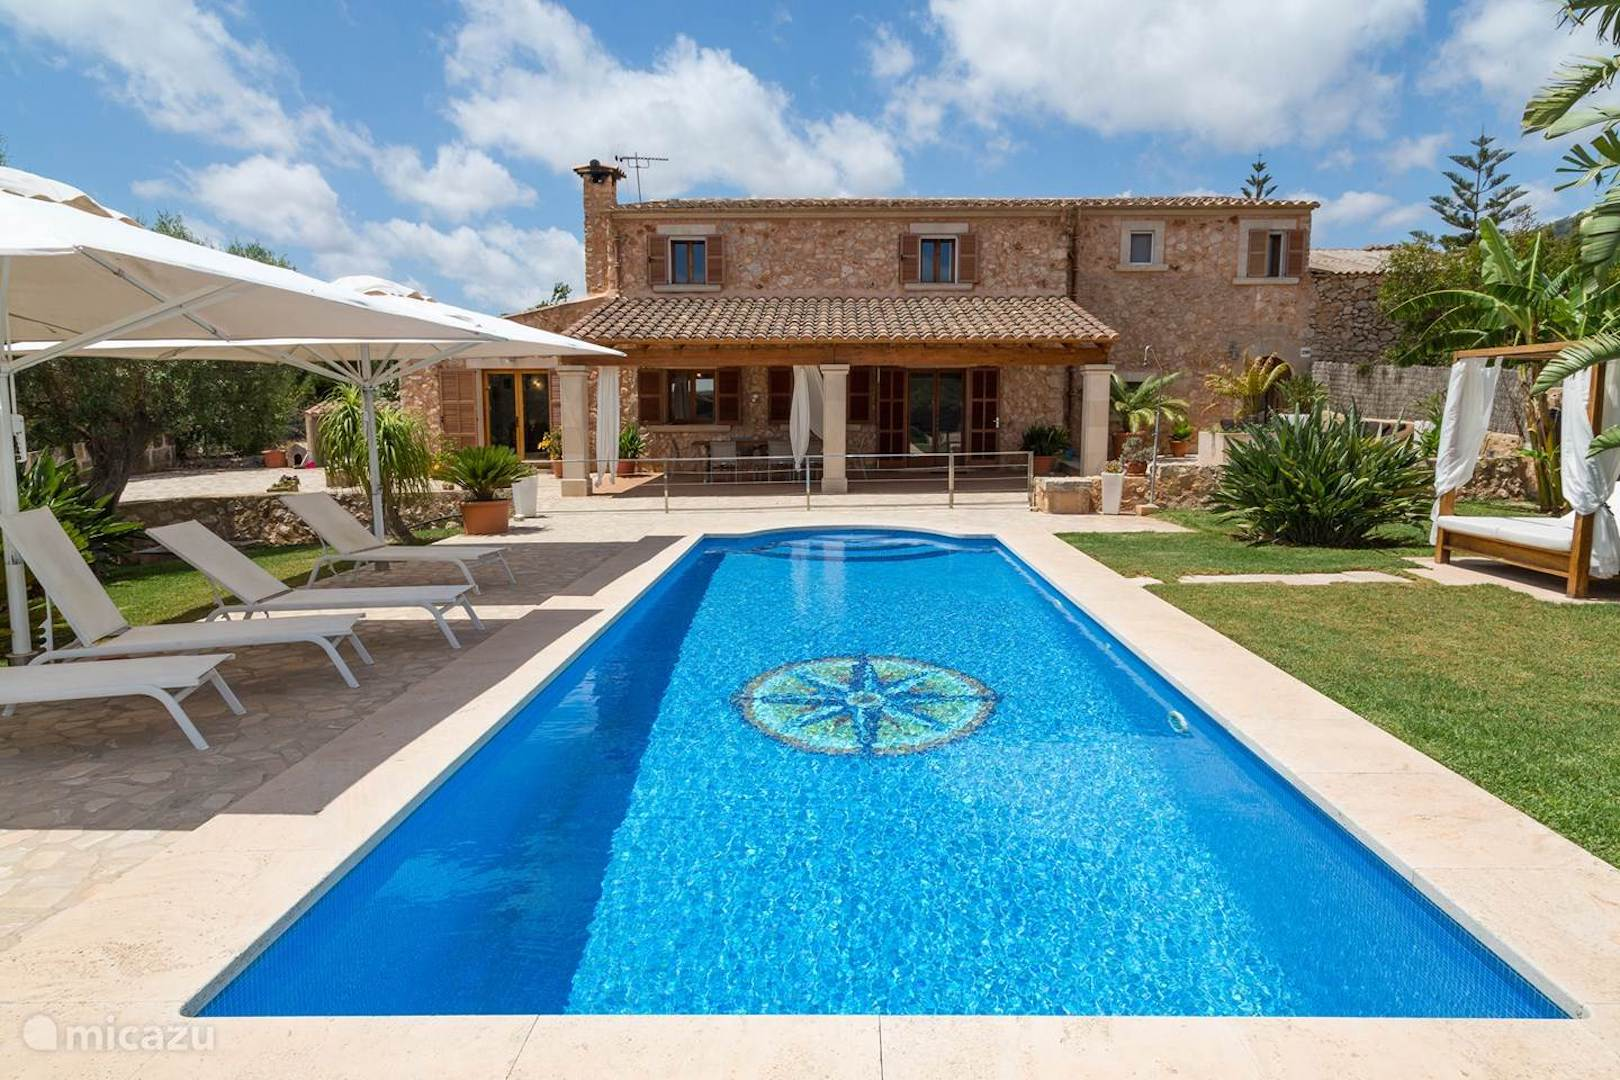 A house with a pool in front of a building at Finca David.